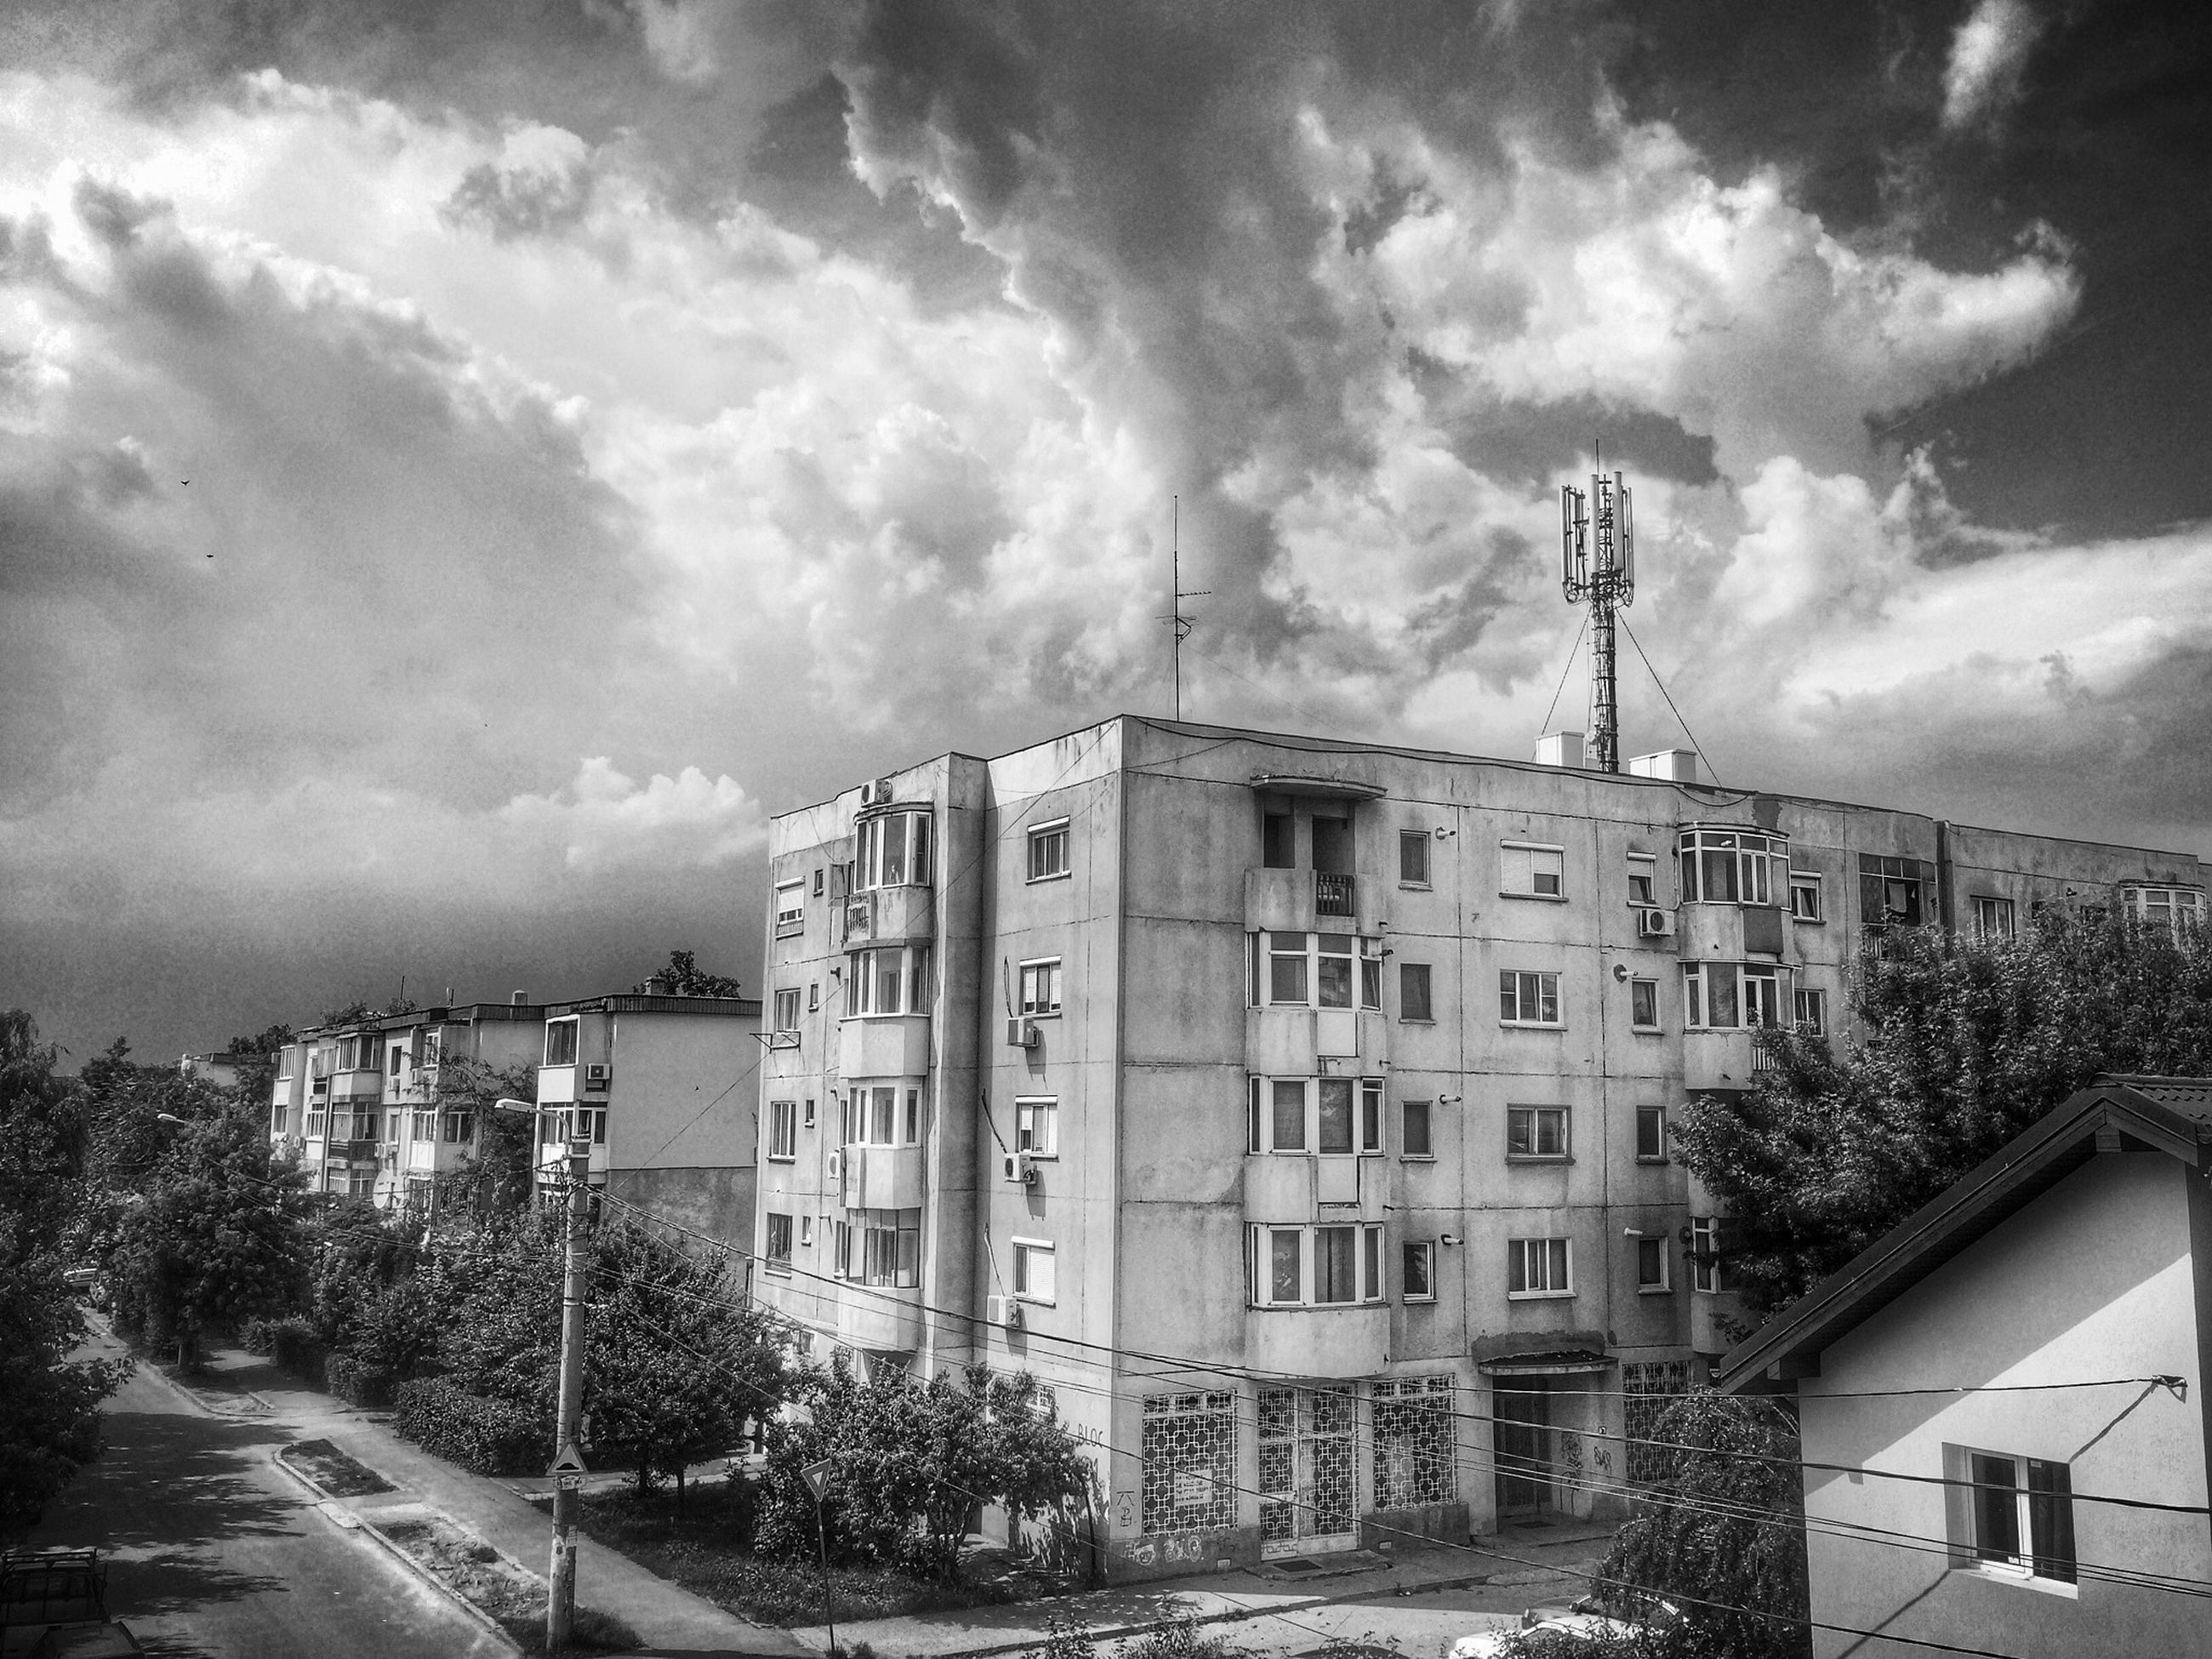 building exterior, architecture, built structure, sky, residential building, residential structure, cloud - sky, house, tree, city, residential district, cloudy, building, cloud, outdoors, day, no people, window, street, road